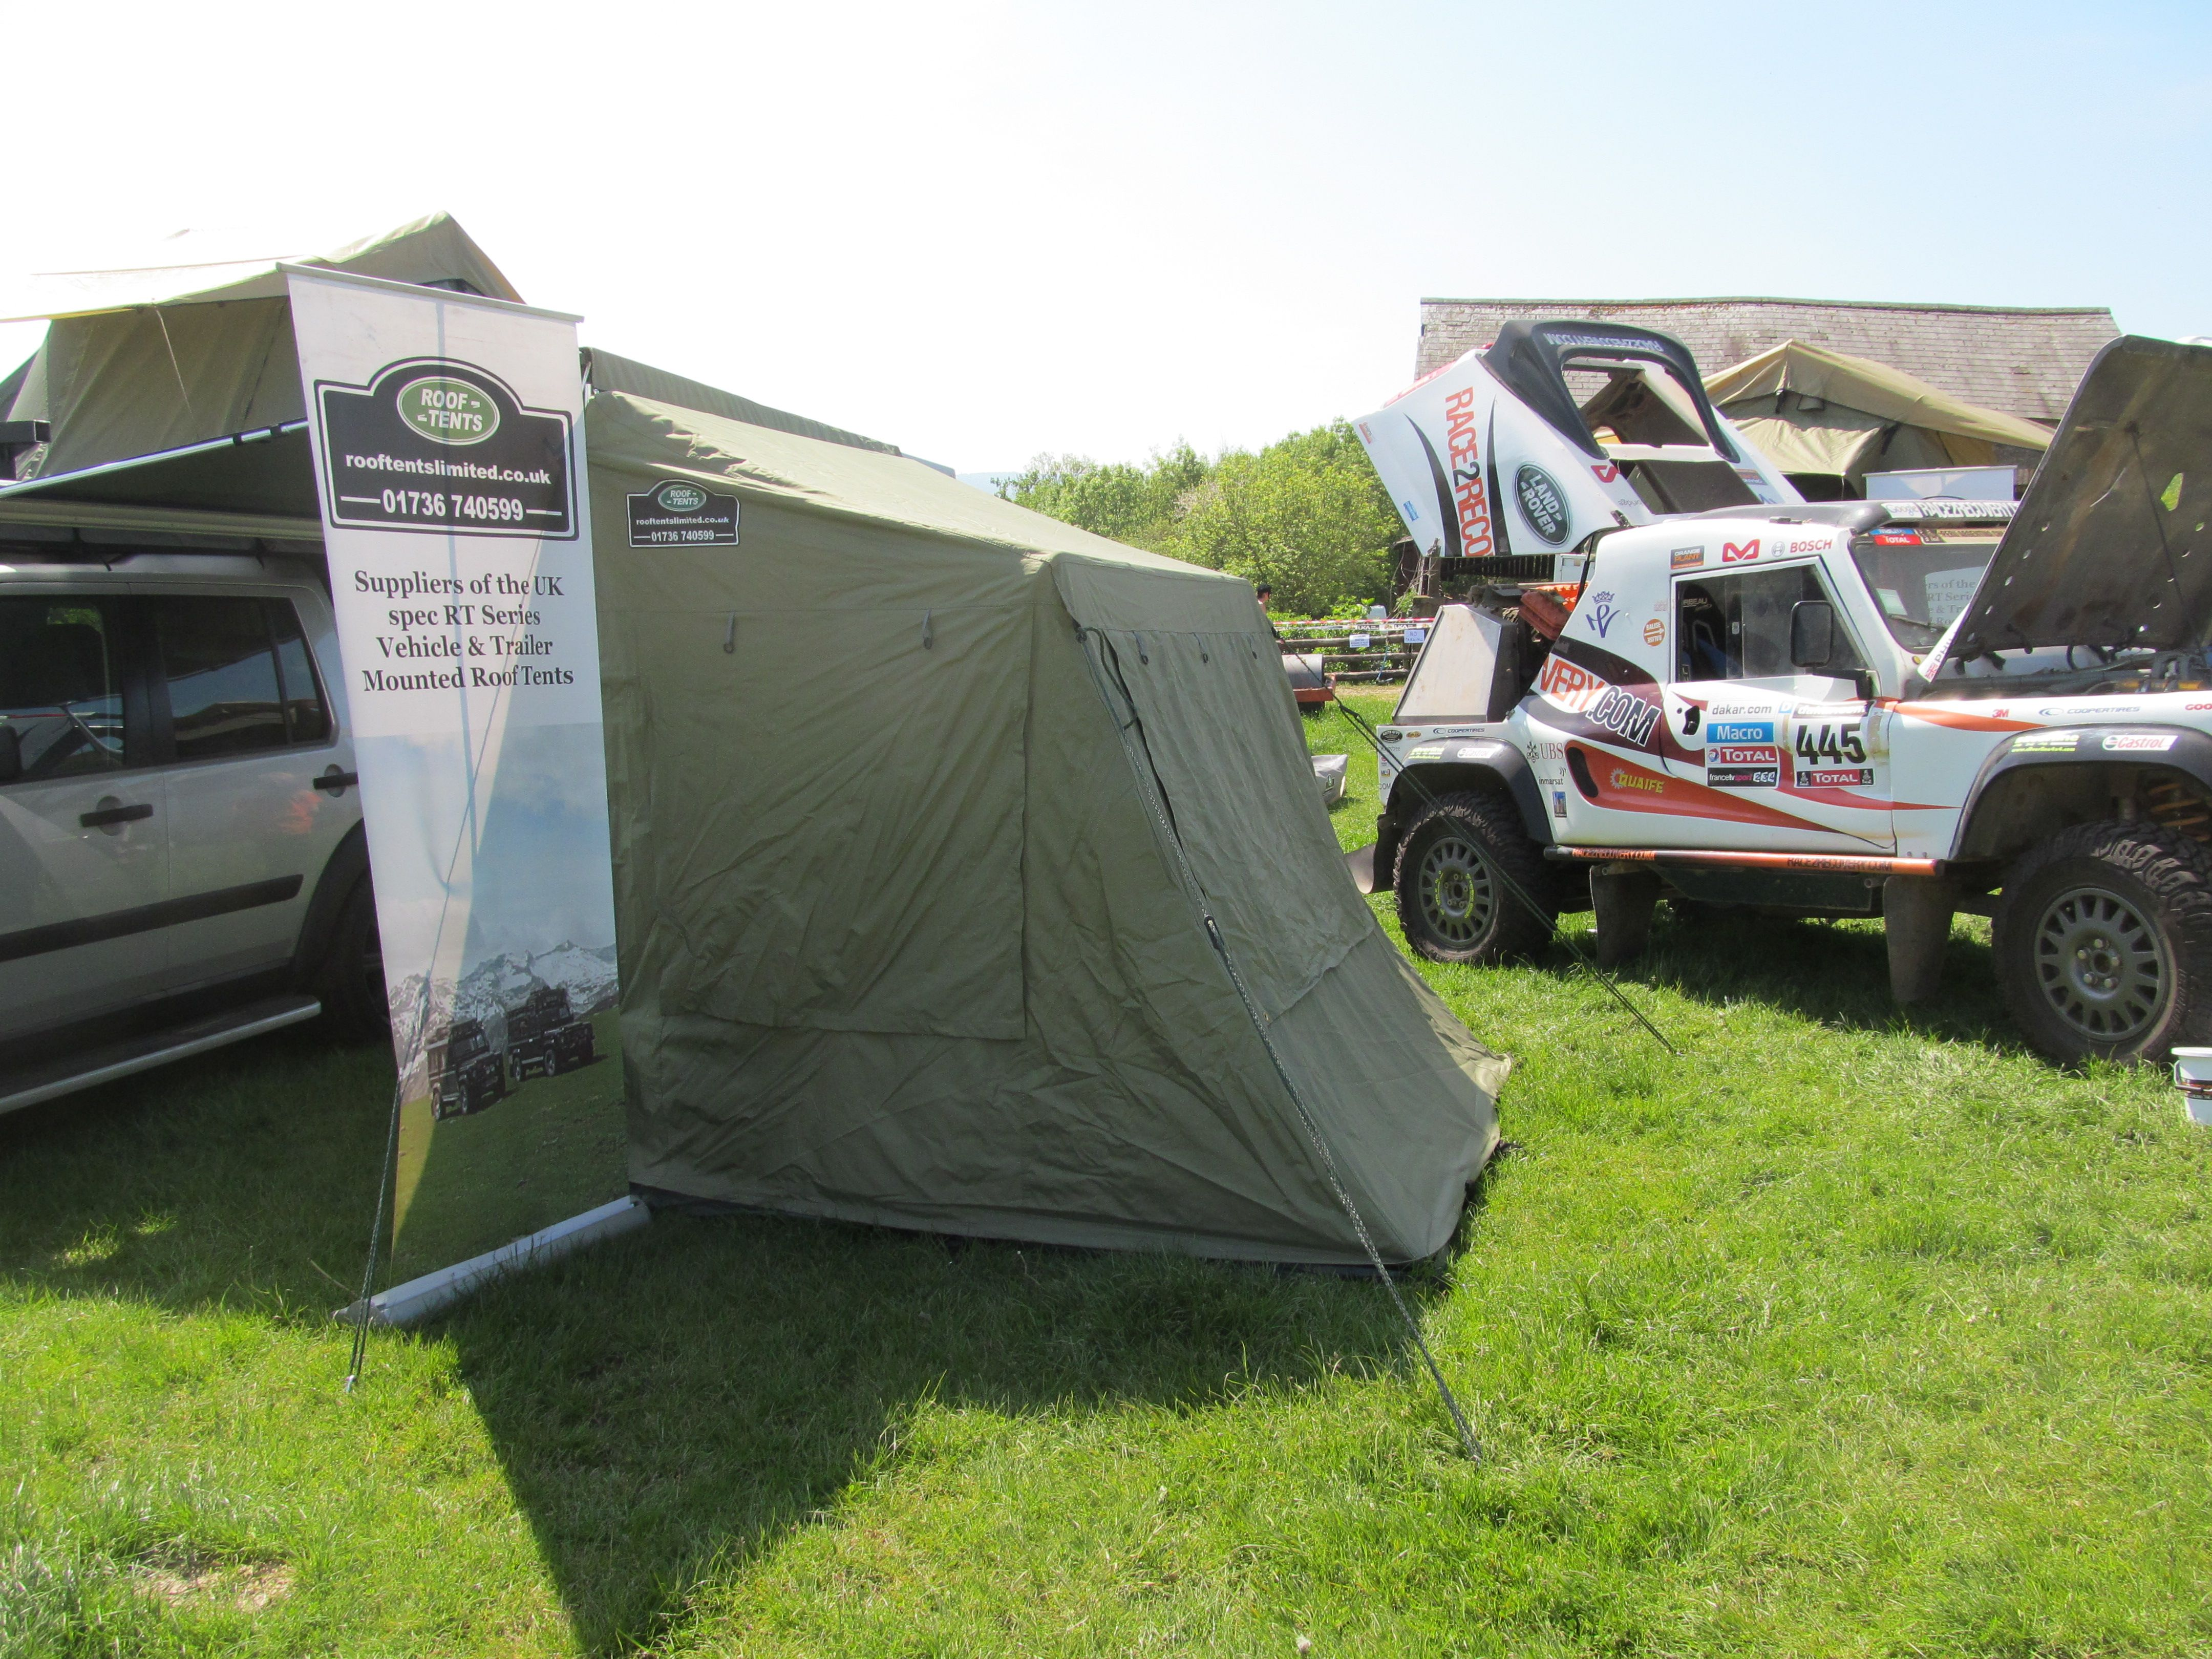 ALRC Nationals with @Roof Tents and Joy & ALRC Nationals with @Roof Tents and Joy   2013 from Santiago to ... memphite.com